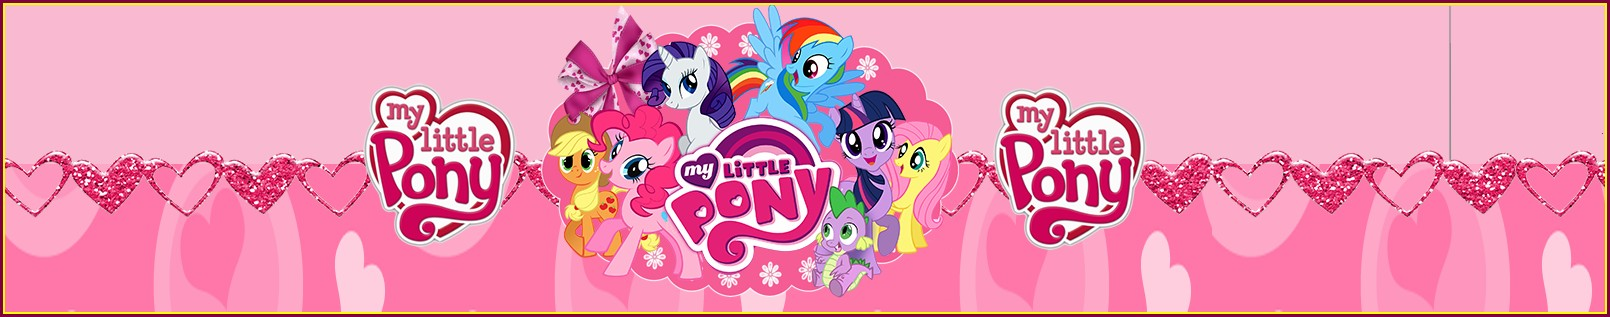 My Little Pony Birthday Invitations Online